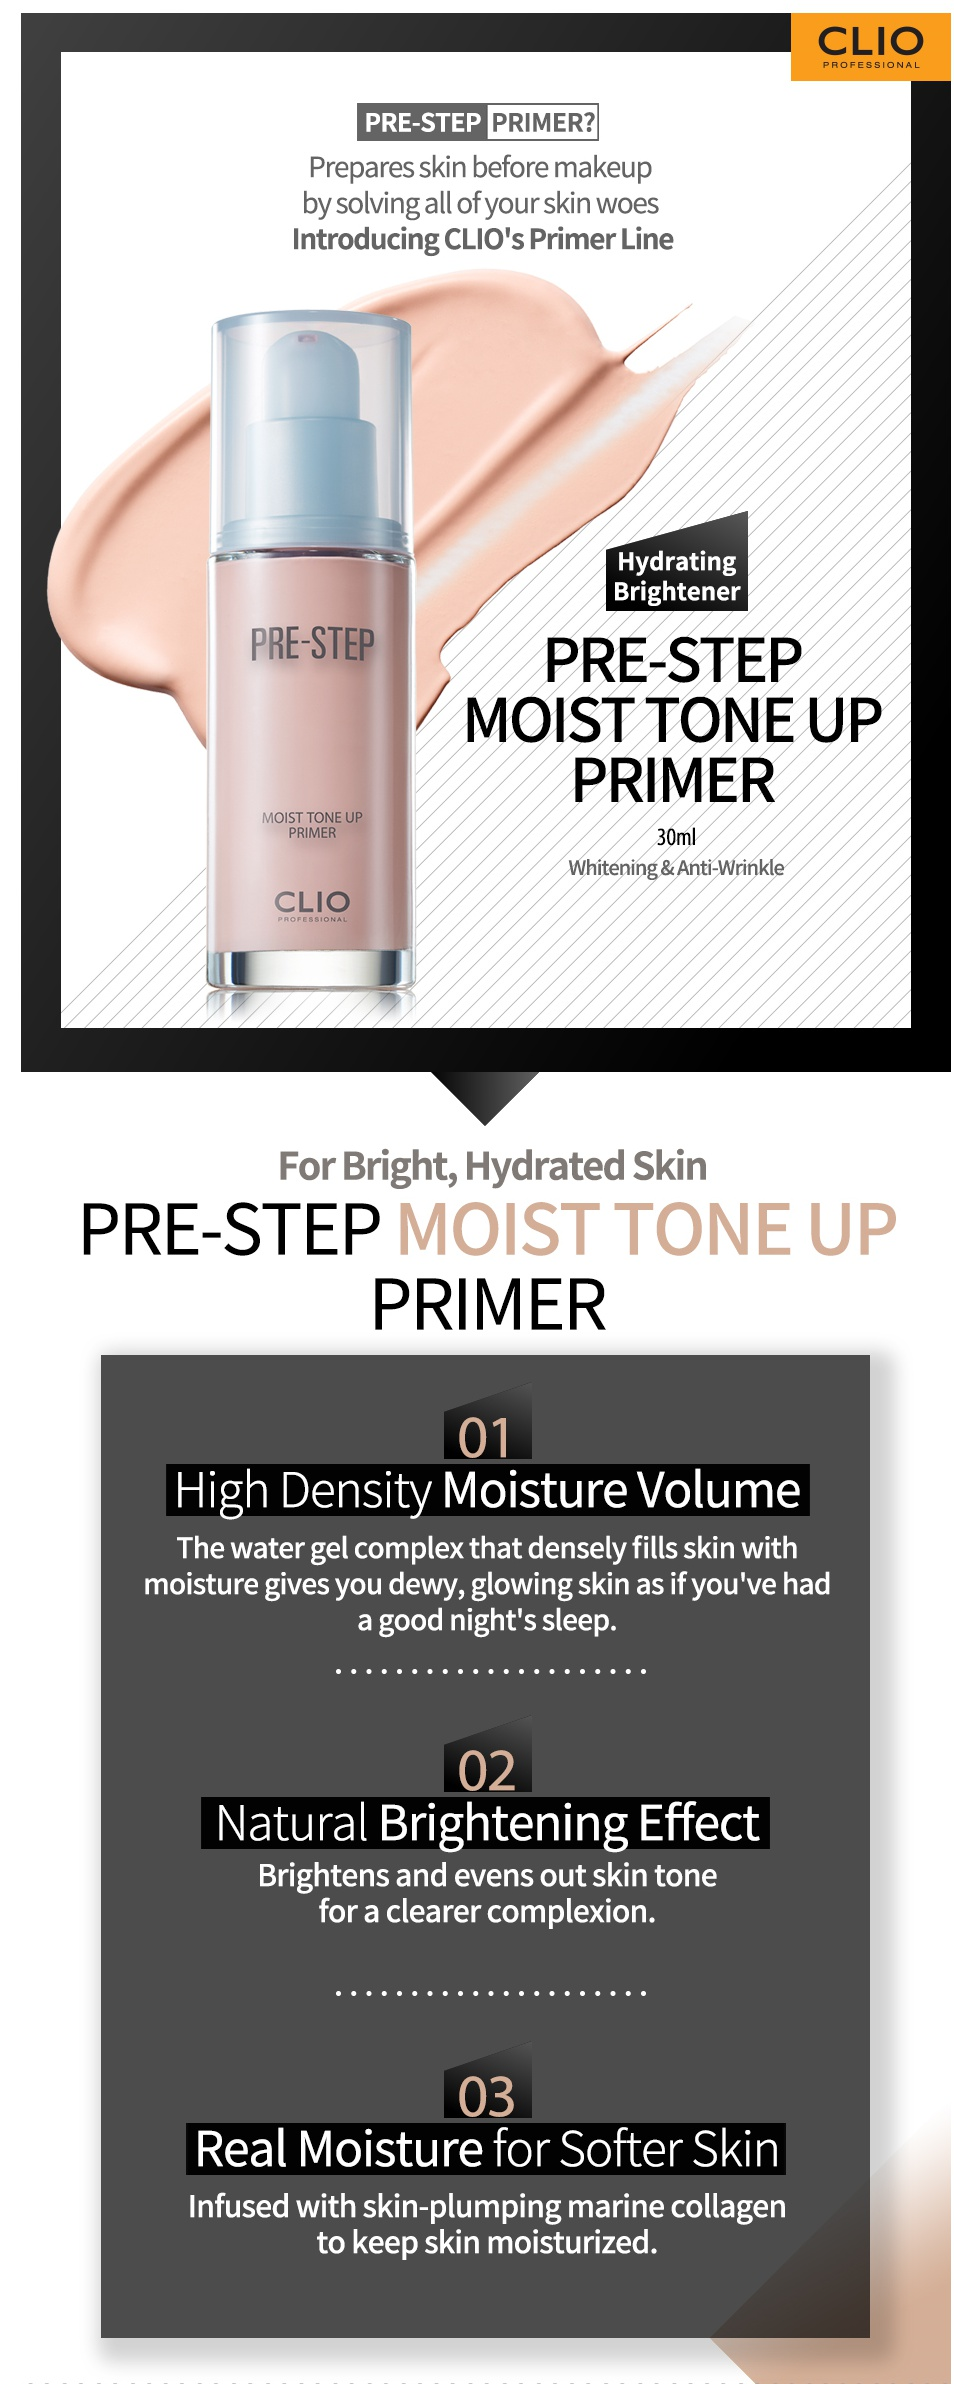 [Clio] Pre-Step Moist Tone up Primer 30ml에 대한 이미지 검색결과